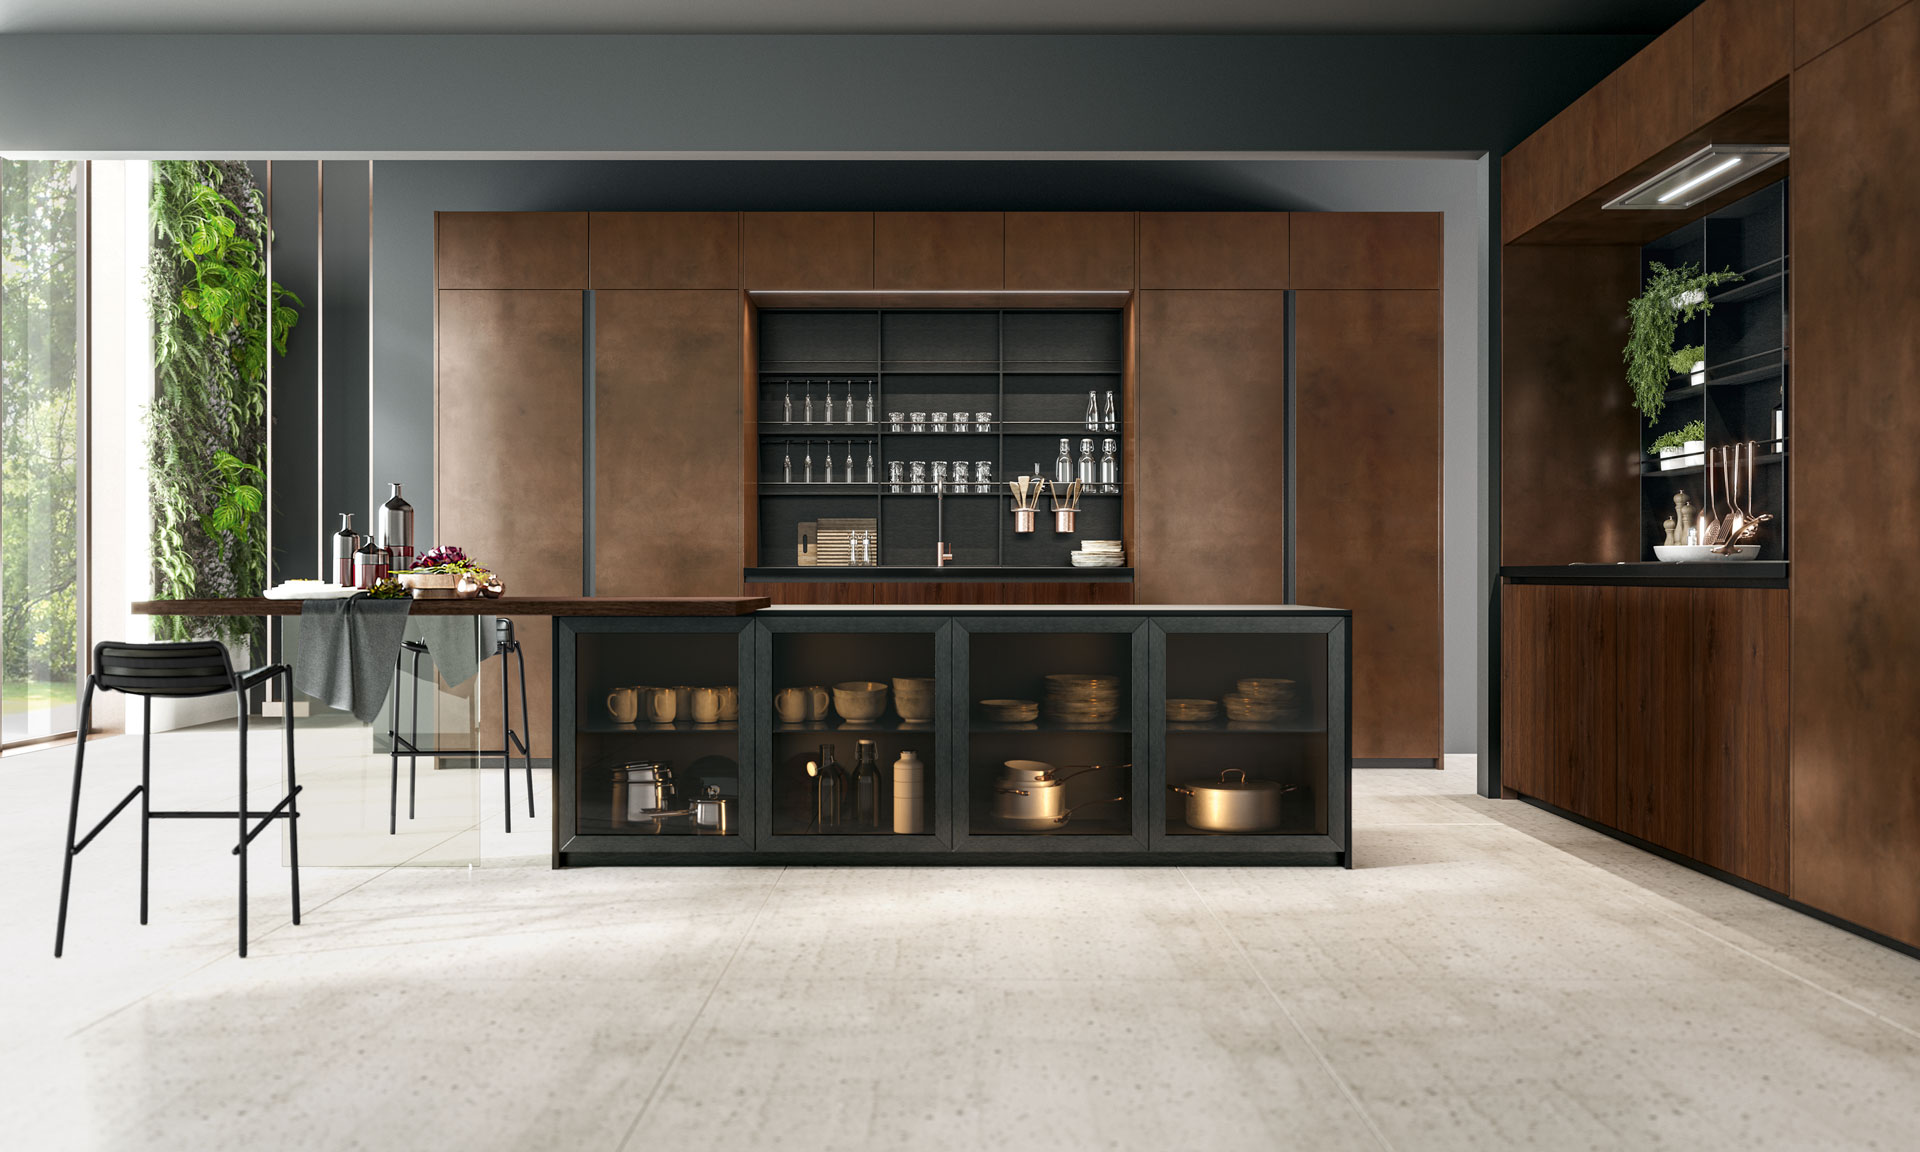 Oltre - Design Collection. Strong, modern, technologically advanced. A kitchen featuring pure texturing as its trump card. Compositions and details designed to bring out the best of contemporary living. - Cucine LUBE